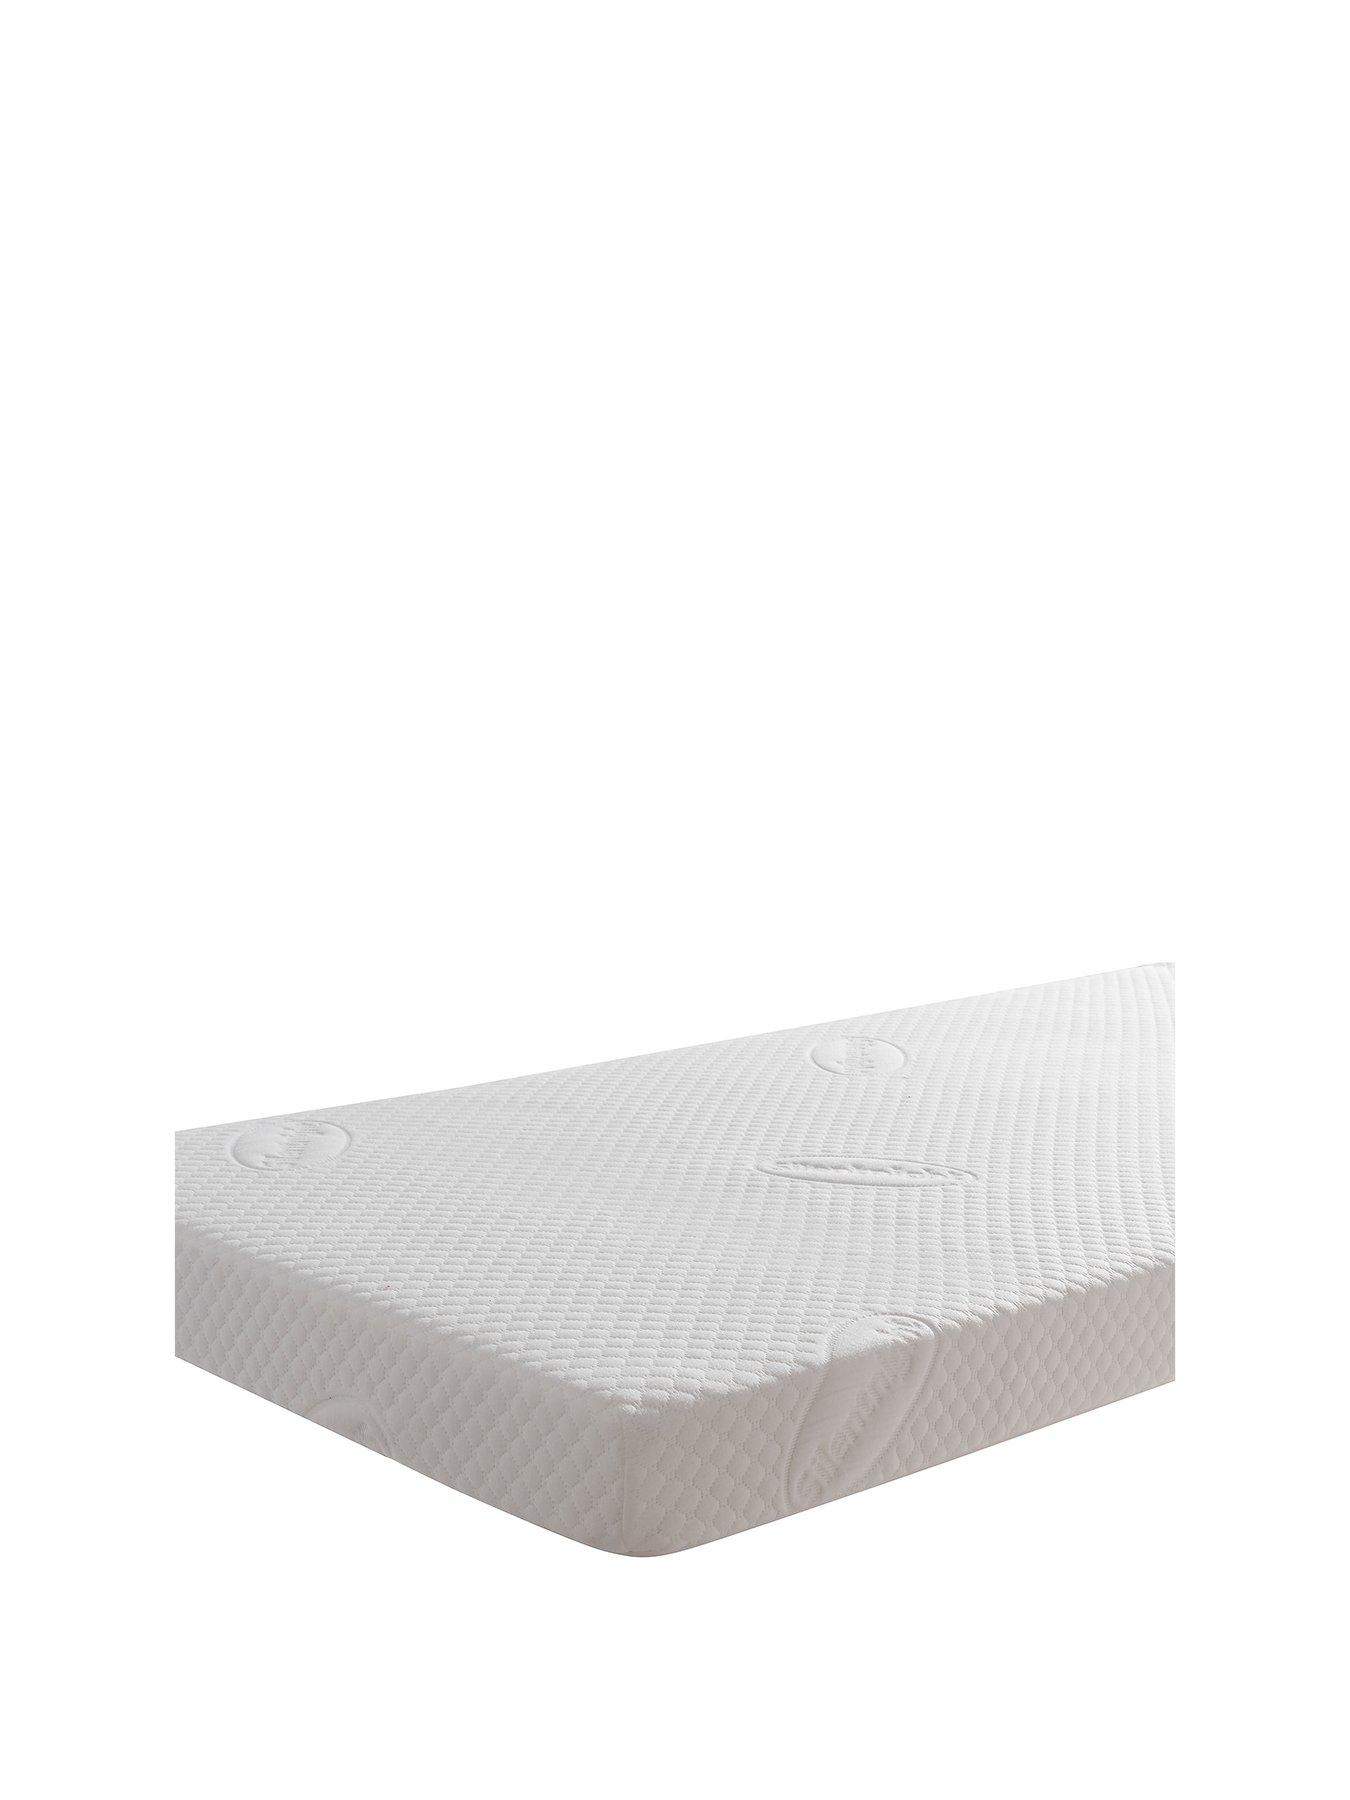 COT BED FOAM MATTRESS HIGH QUALITY COT MATTRESSES ALL SIZES AVAILABLE